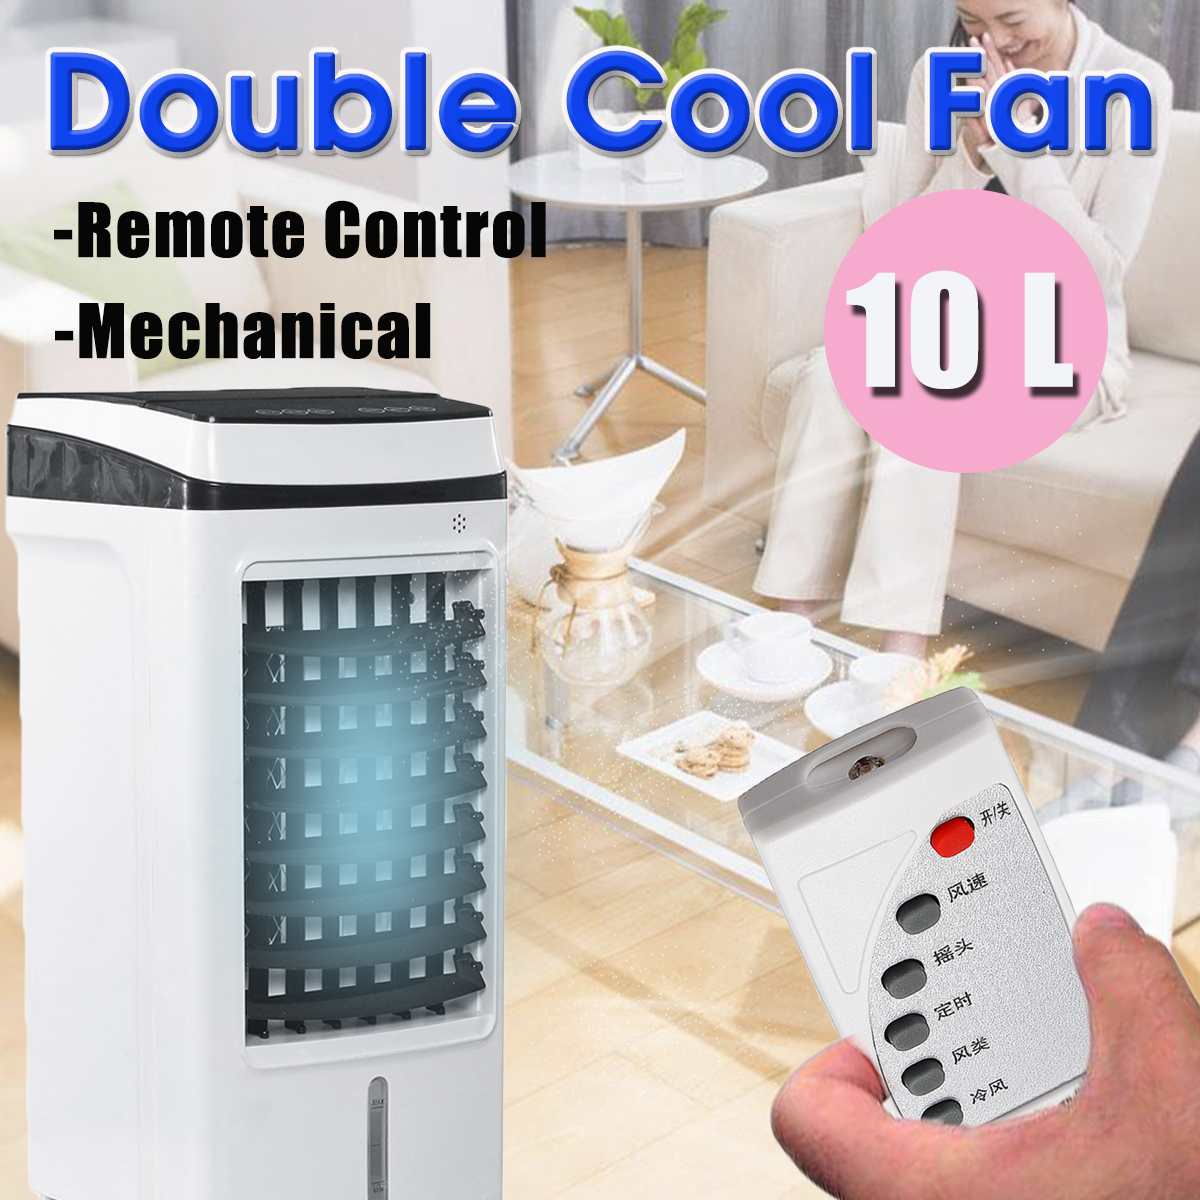 220V Air Conditioner Fan Mobile Air Conditioning Cooler Fan Portable Home Small Air-conditioning Humidification Timer w/Remote220V Air Conditioner Fan Mobile Air Conditioning Cooler Fan Portable Home Small Air-conditioning Humidification Timer w/Remote